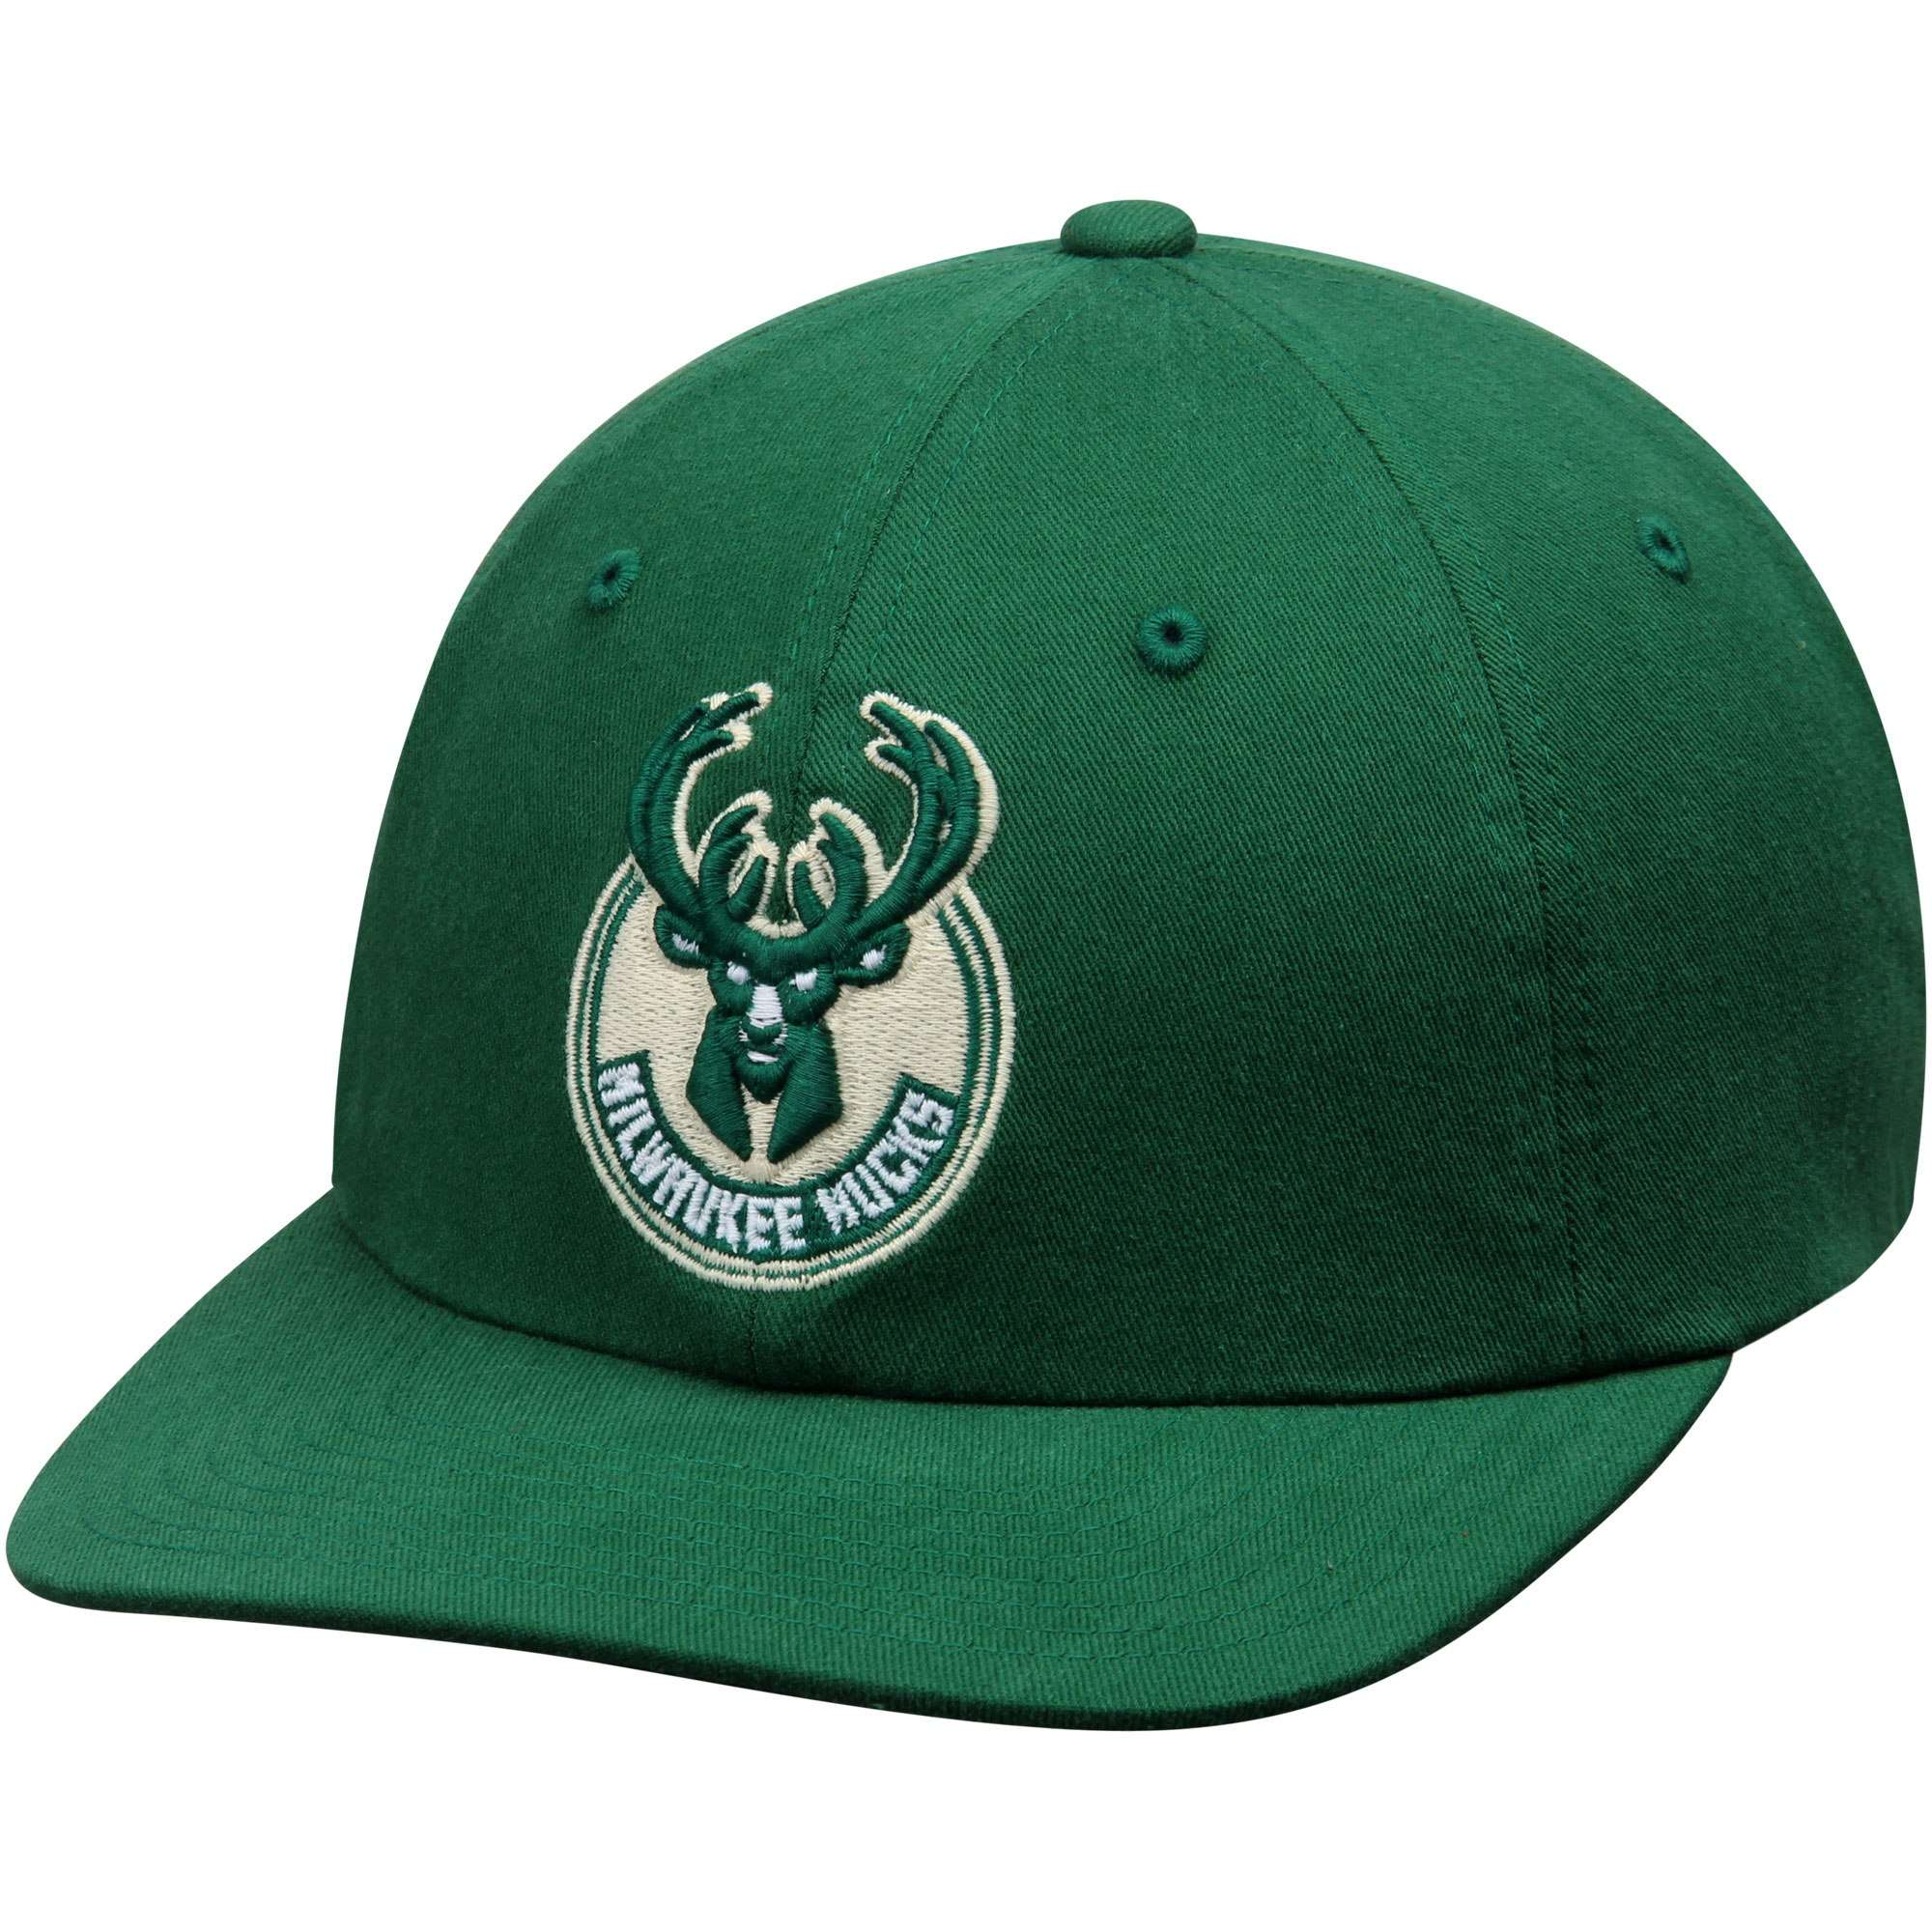 Hat: NBA - Milwaukee Bucks Green Basic Photo